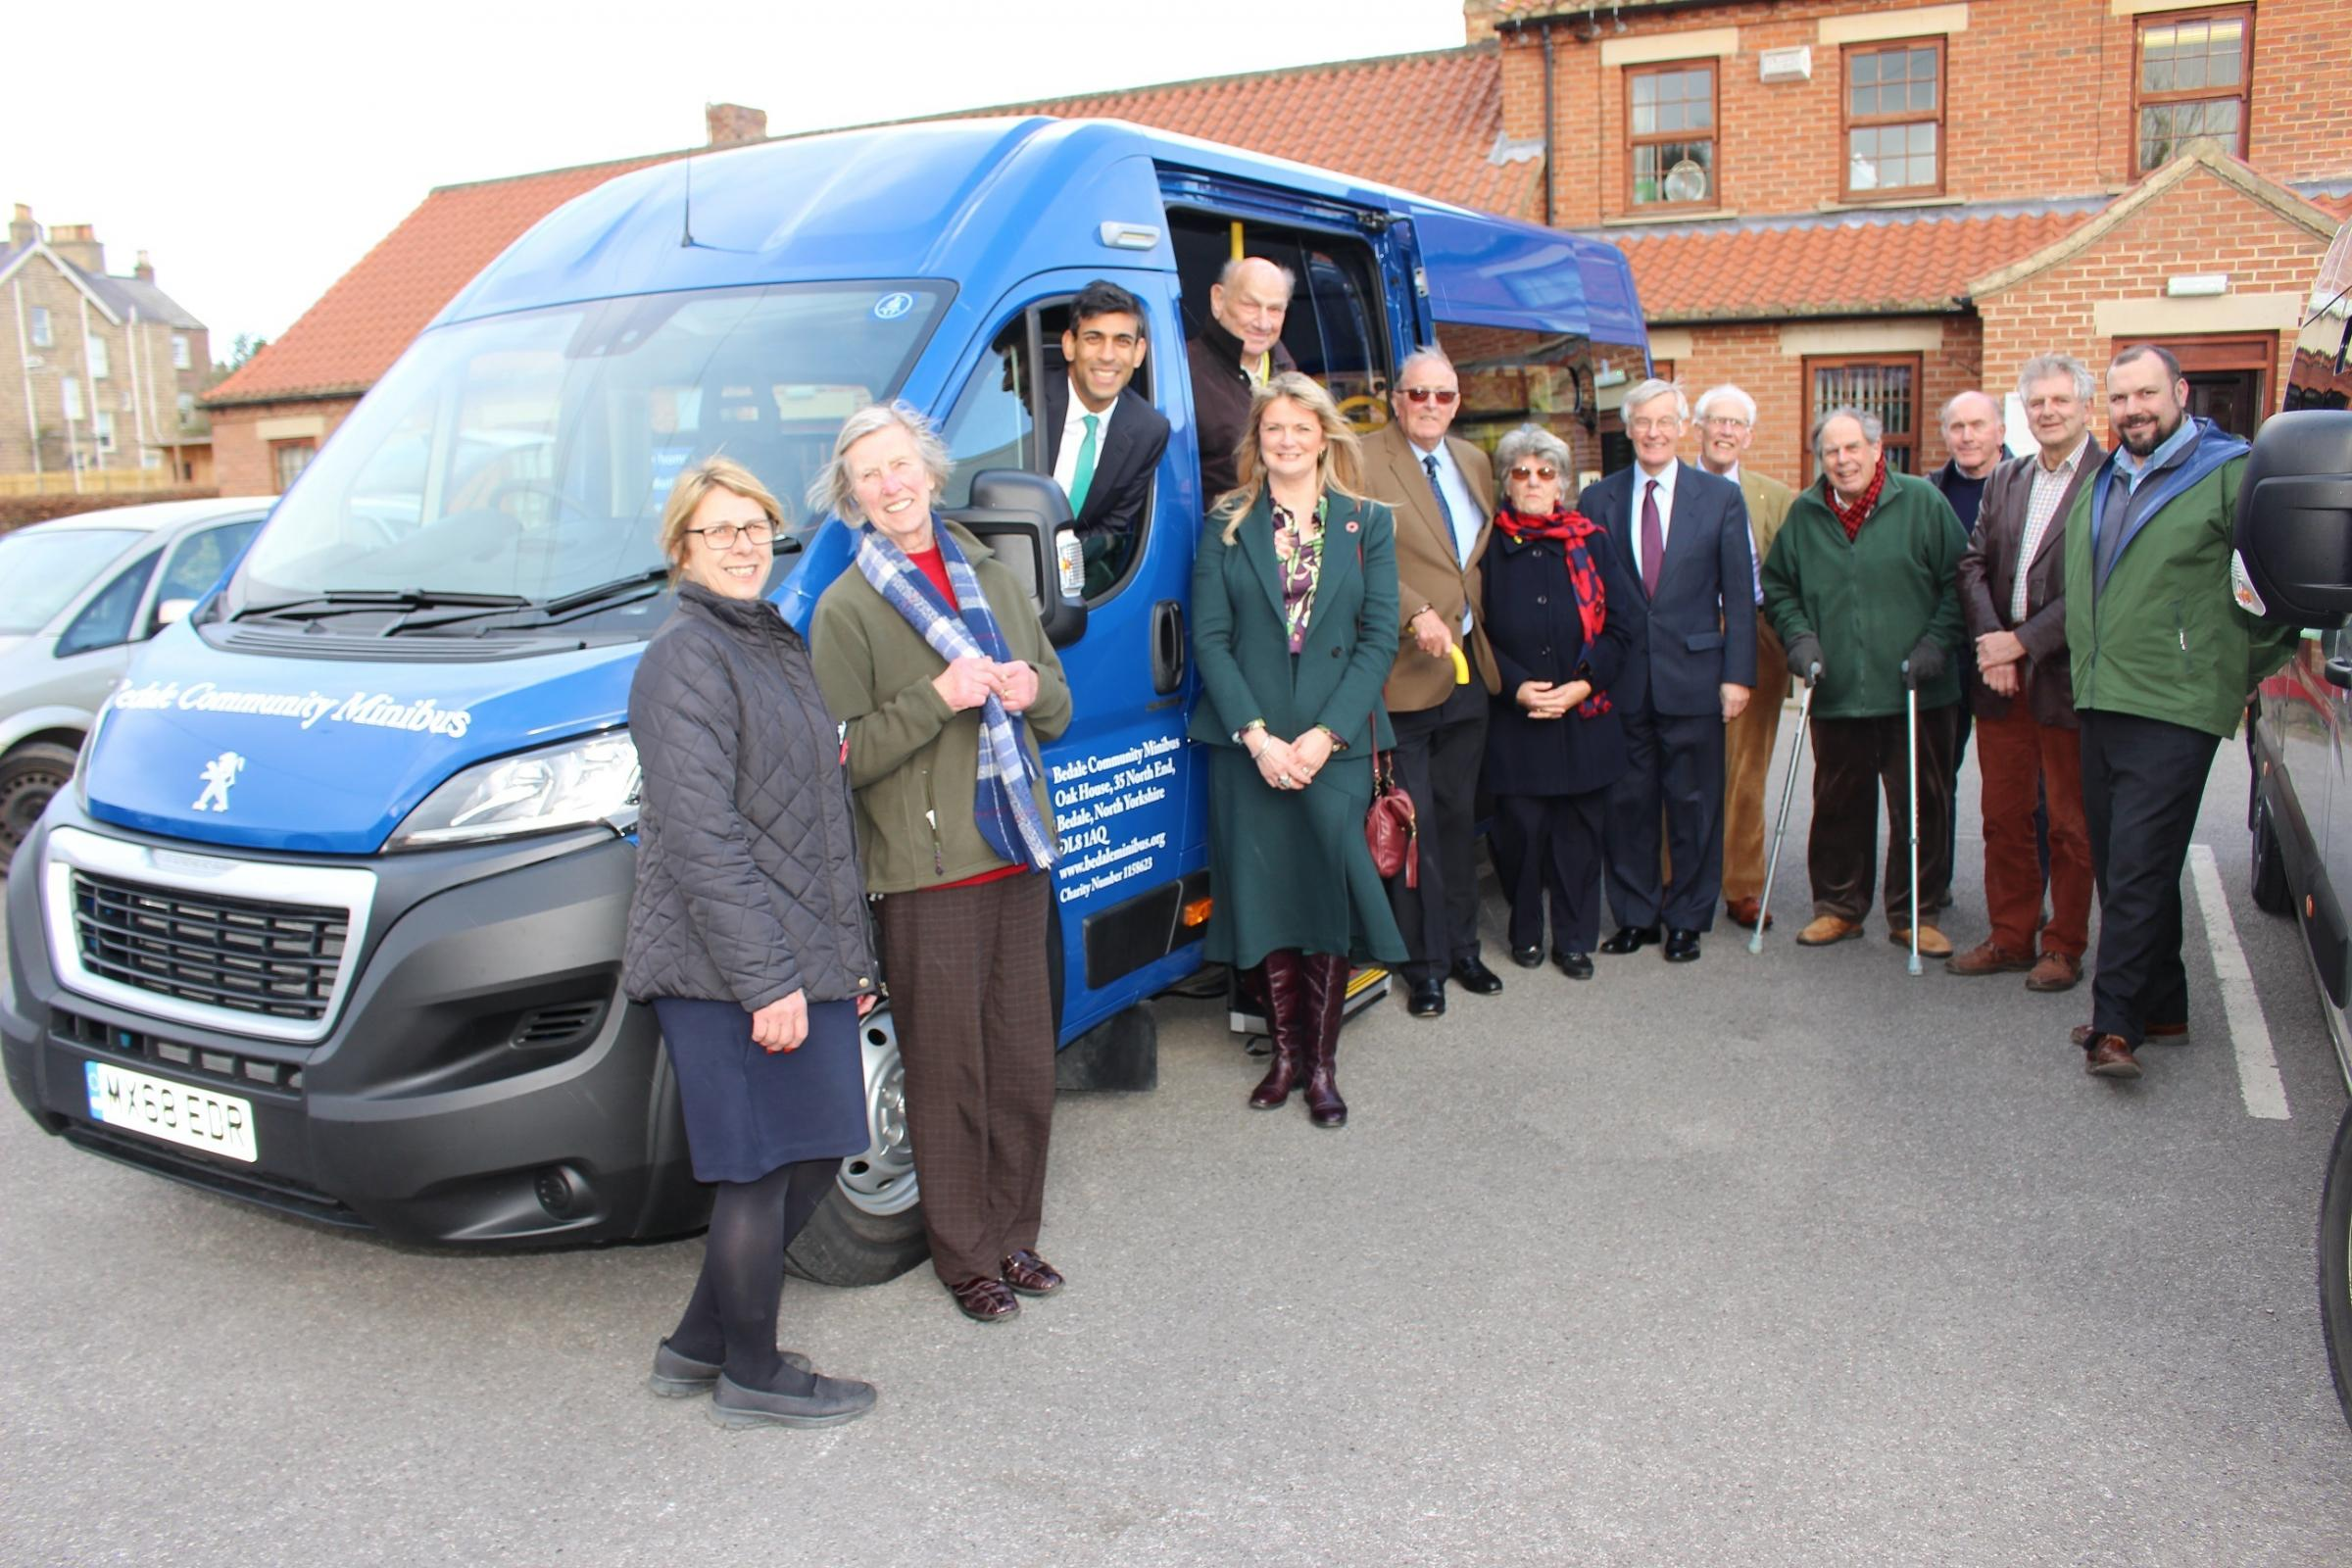 COMMUNITY BUS: Rishi Sunak and volunteers launch the new Bedale Community minibus at the Dales Centre, Bedale